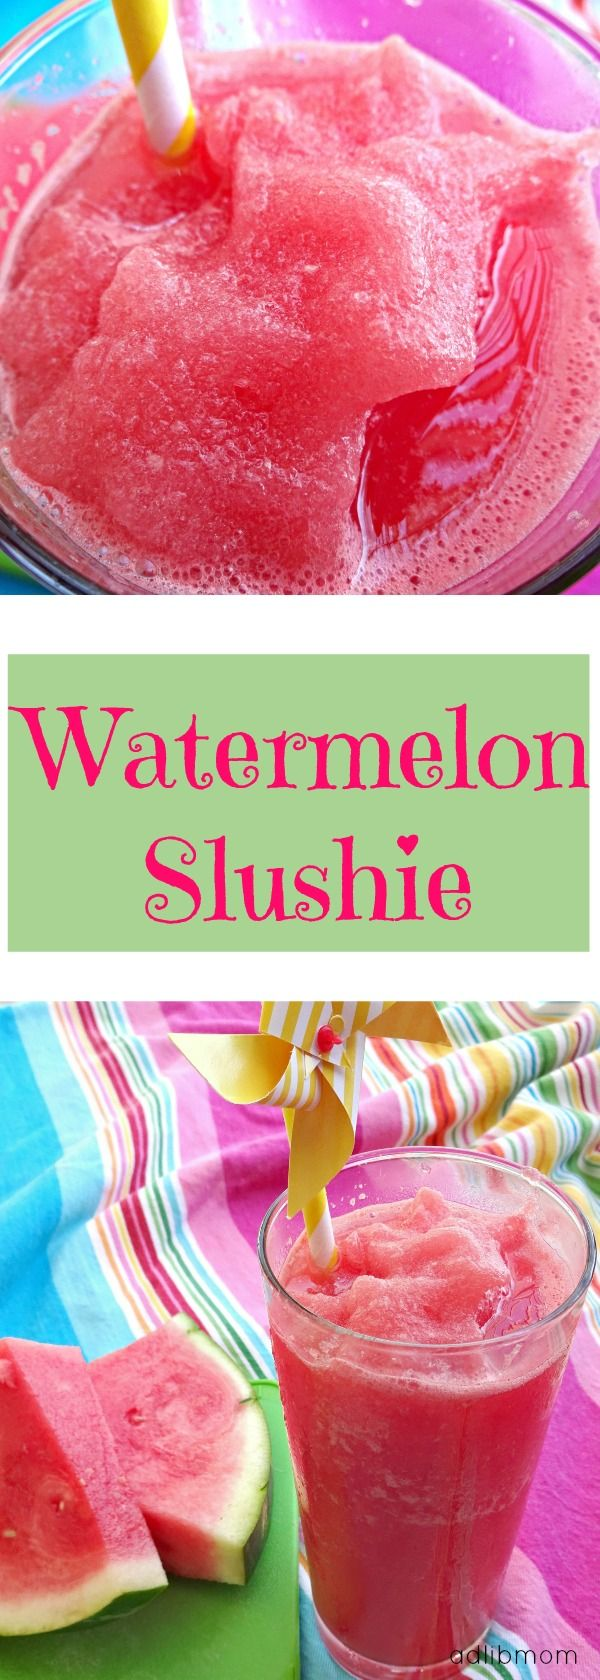 Watermelon Slushie is cool and refreshing. It's a treat that kids and adults will want more of. Watermelon also has many health benefits.